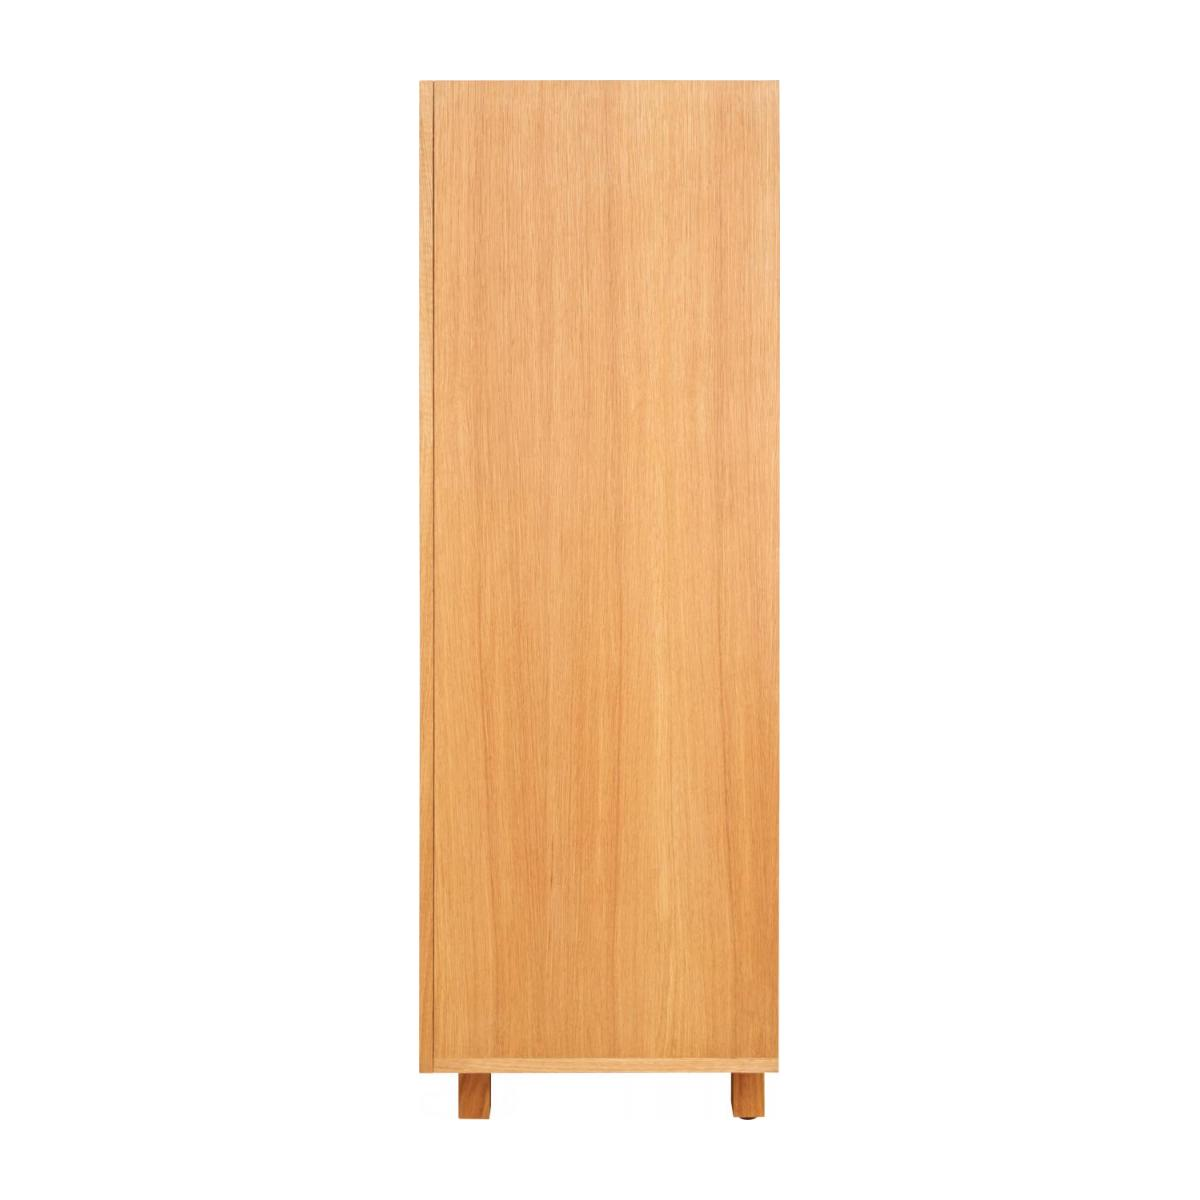 2 doors oak high storage n°4